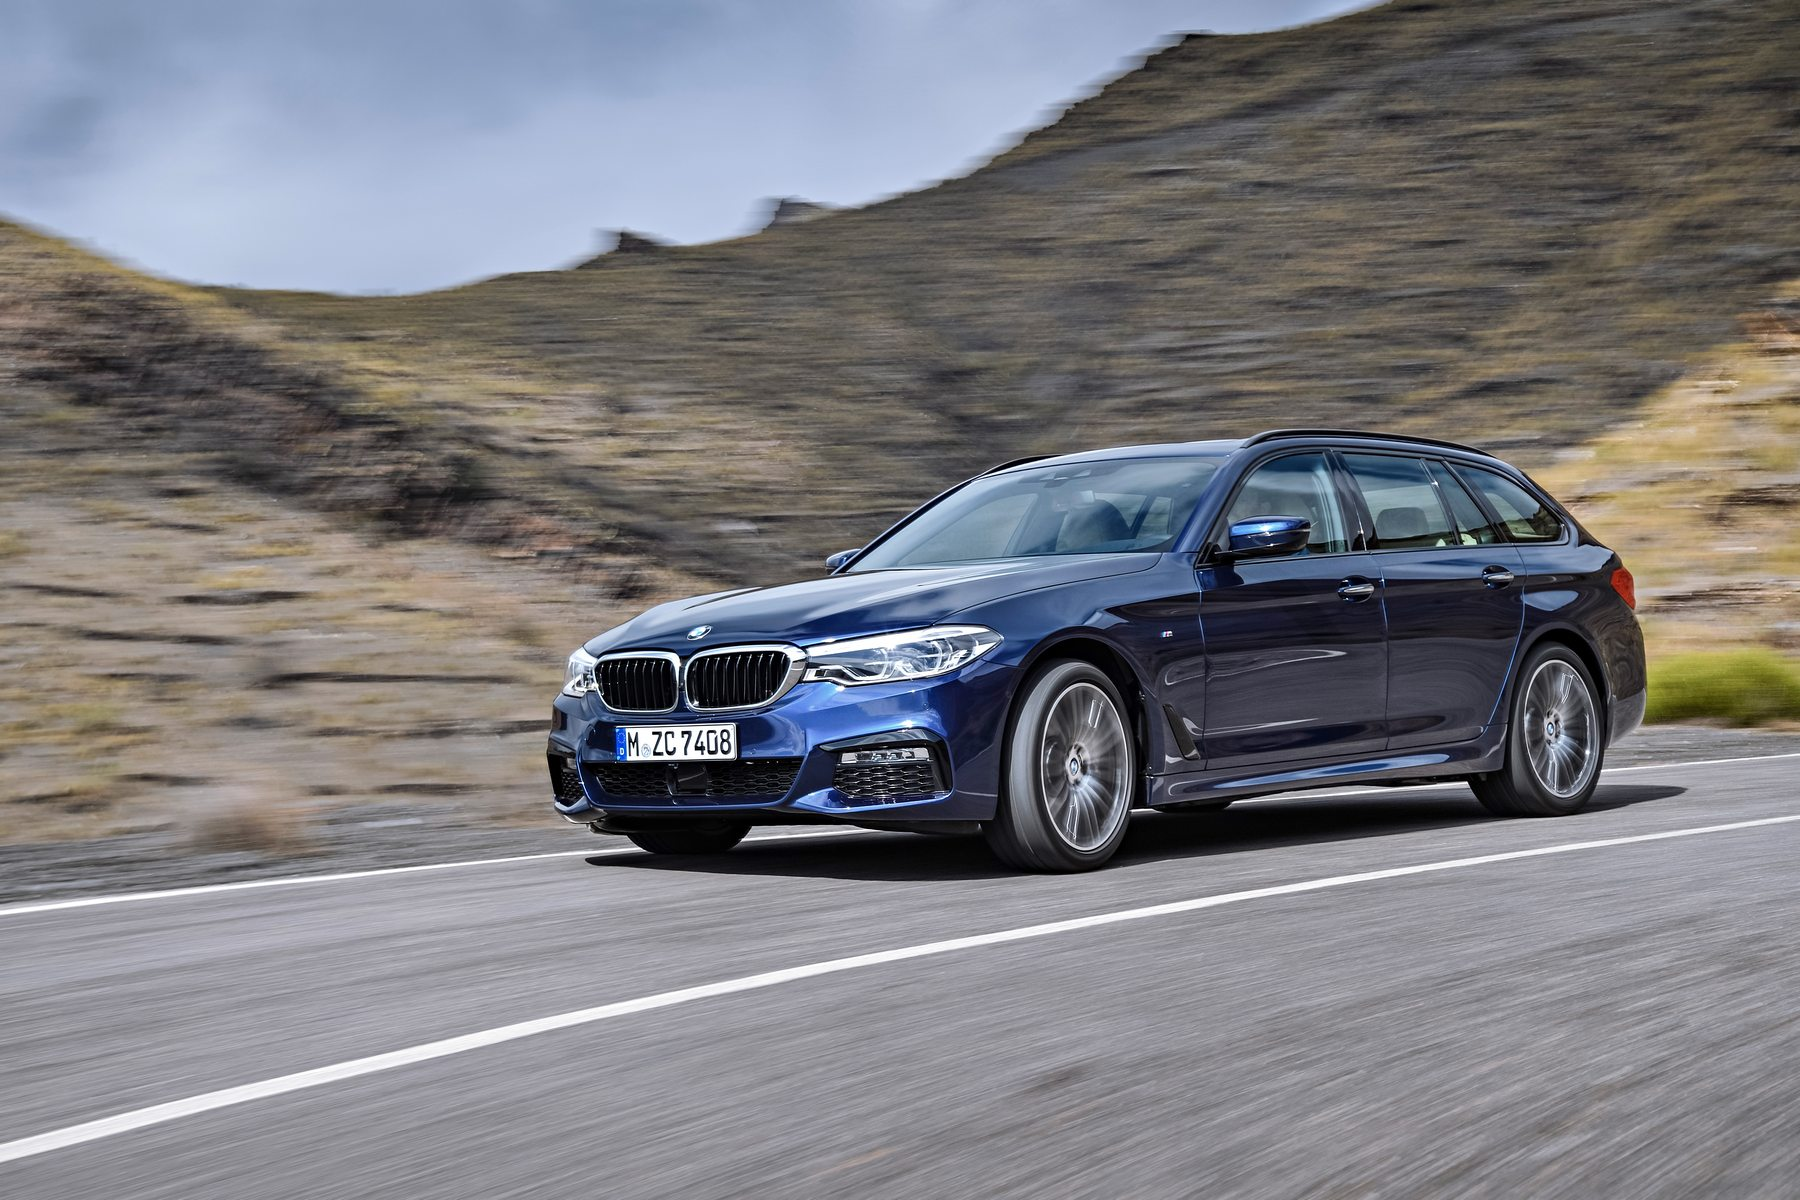 Bmw 5 Series Touring Xdrive Why We Love The New Bmw 5 Series Touring